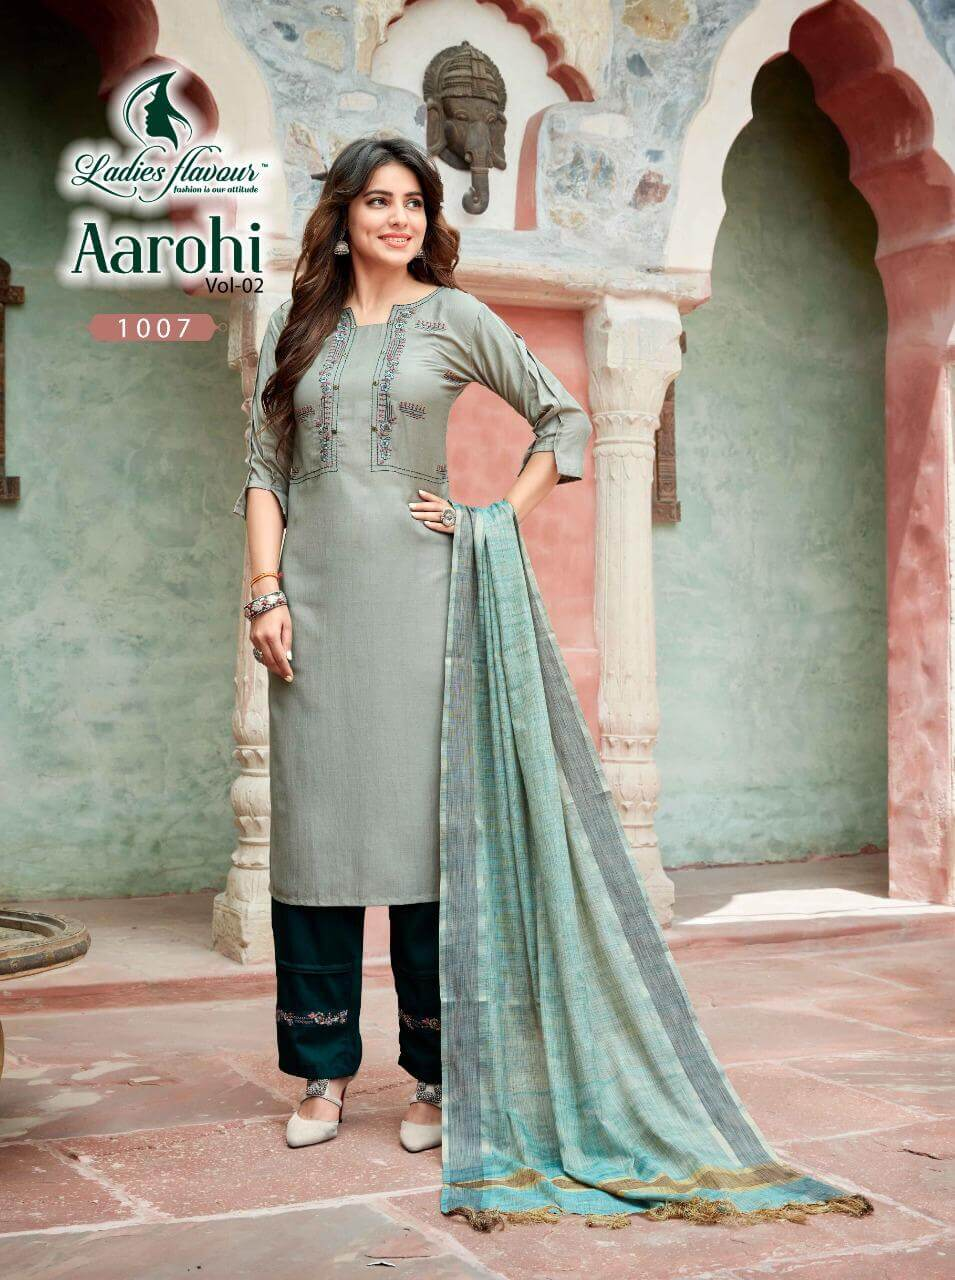 Ladies Flavour Aarohi Vol 2 collection 8